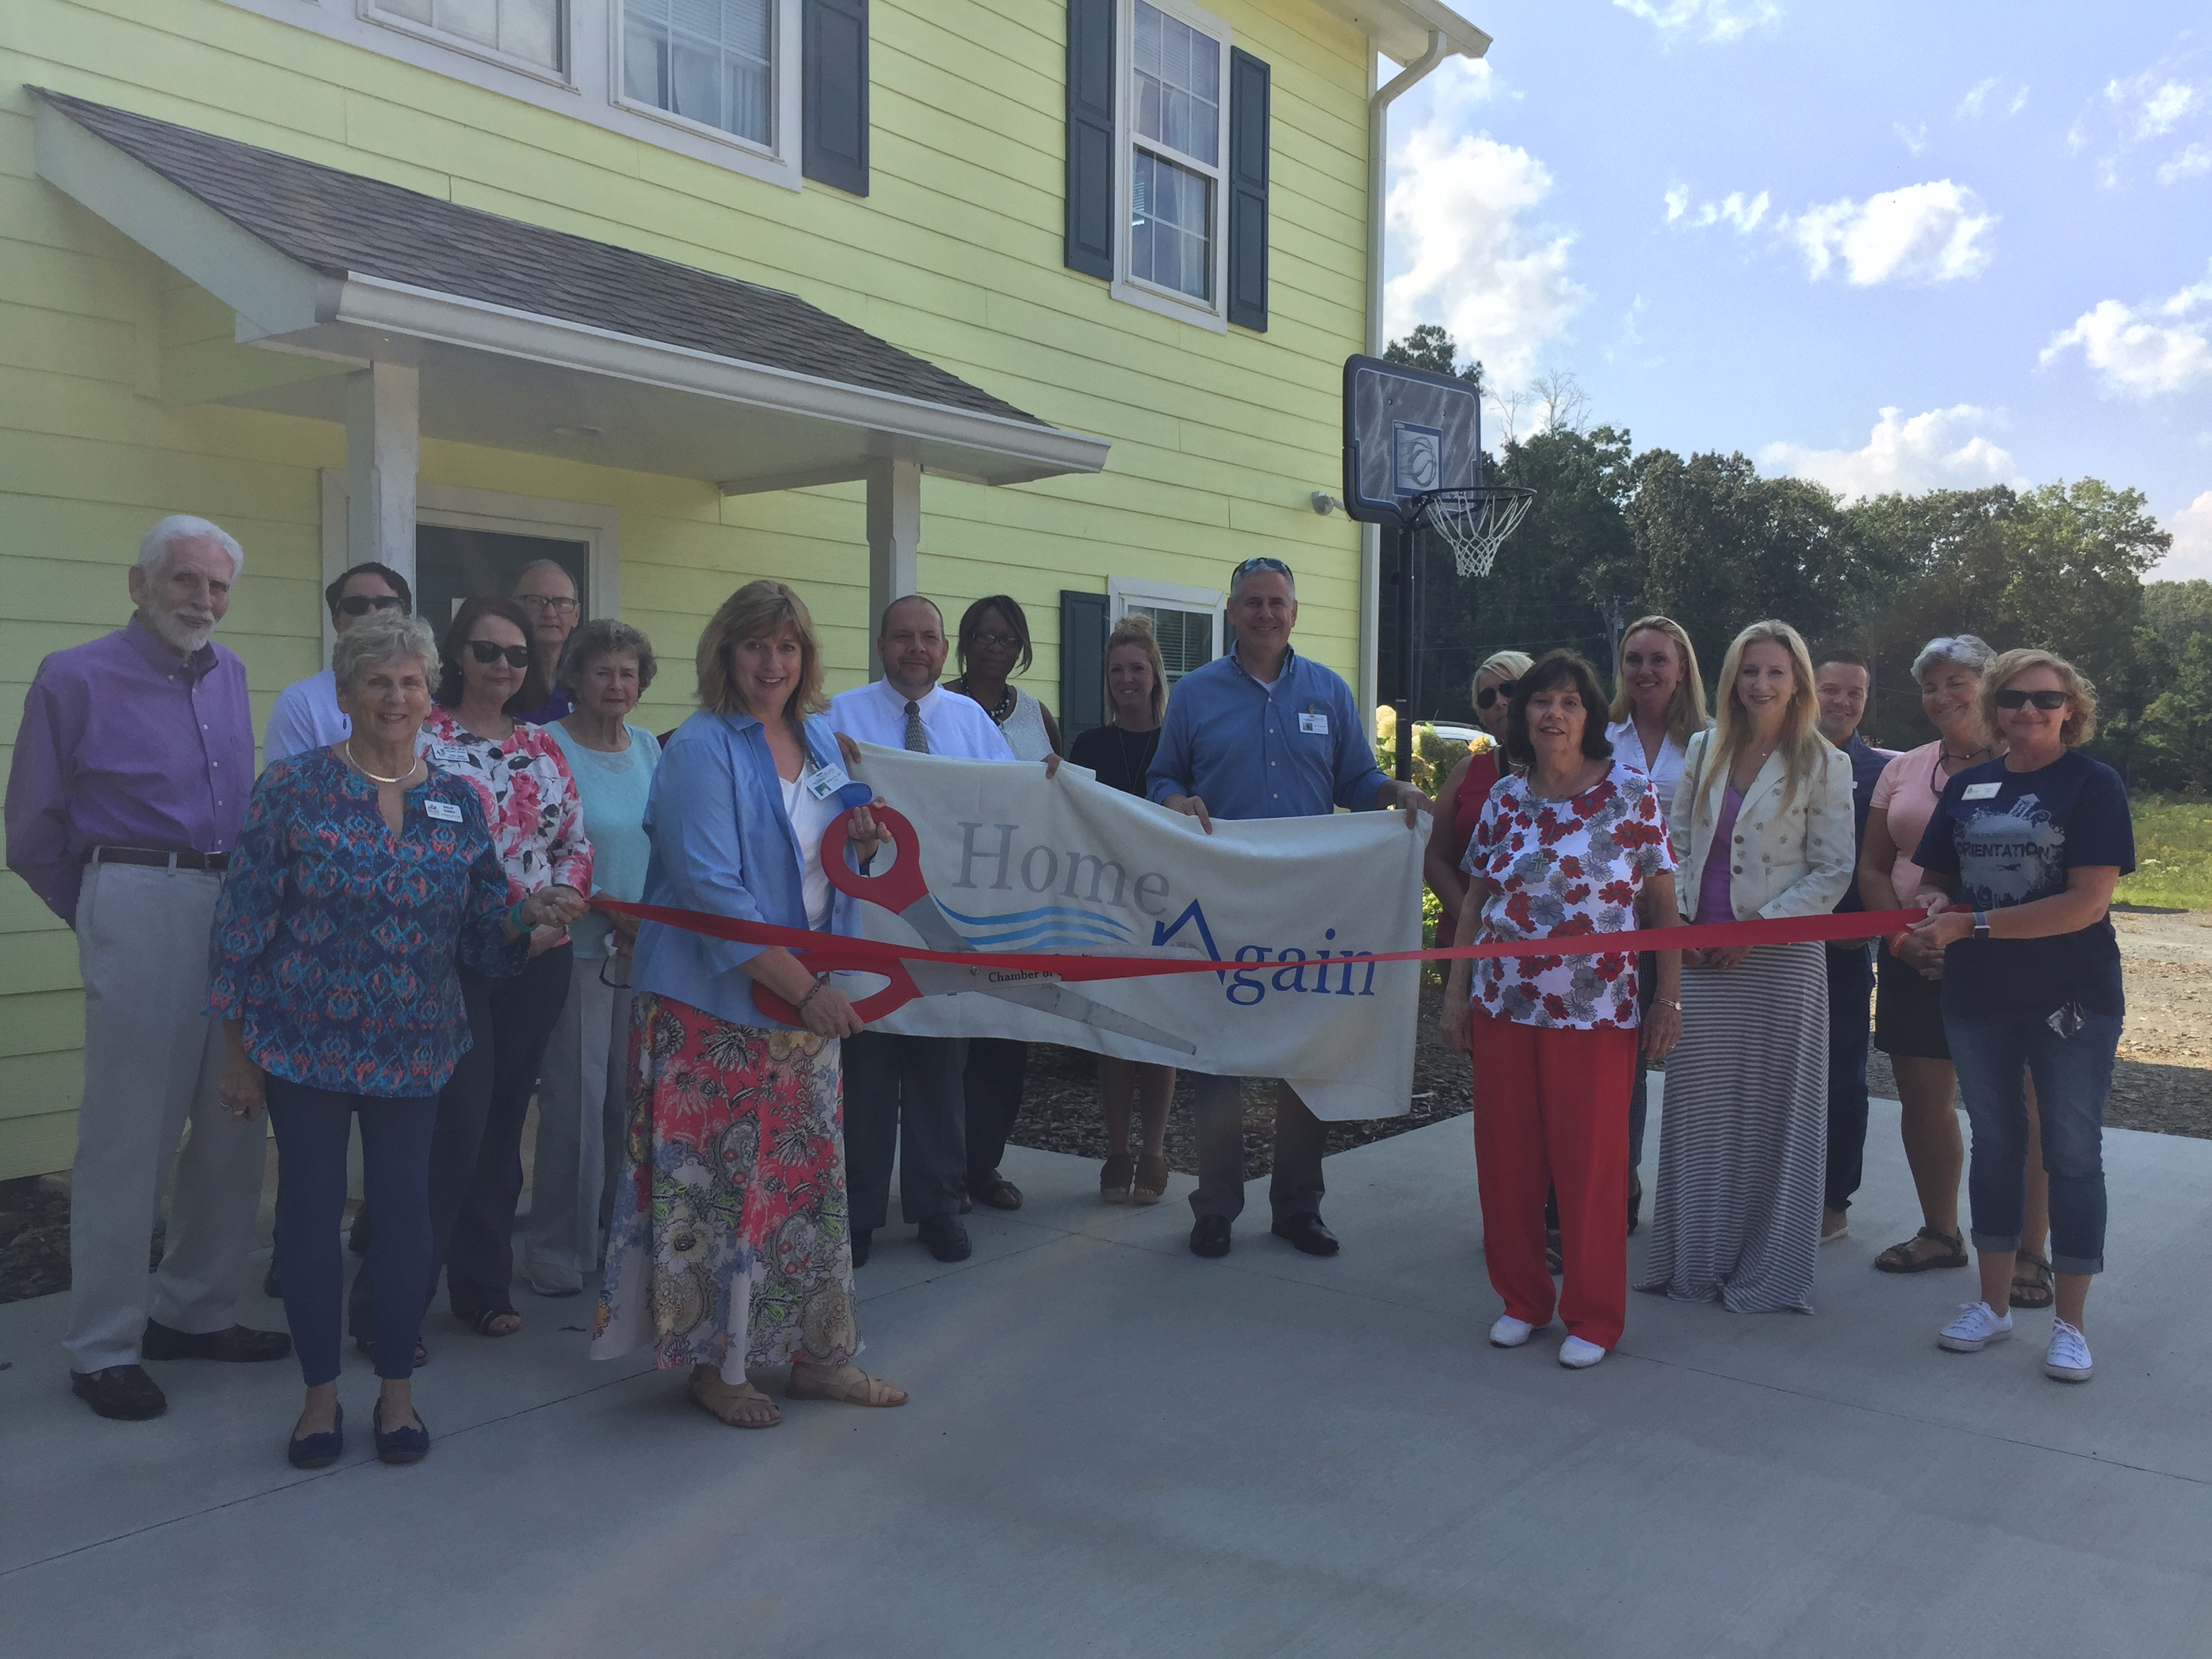 Highland-Rivers-Ribbon-Cutting Ribbon Cutting for Highland Rivers Health's Home Again Program - Gilmer County Chamber of Commerce